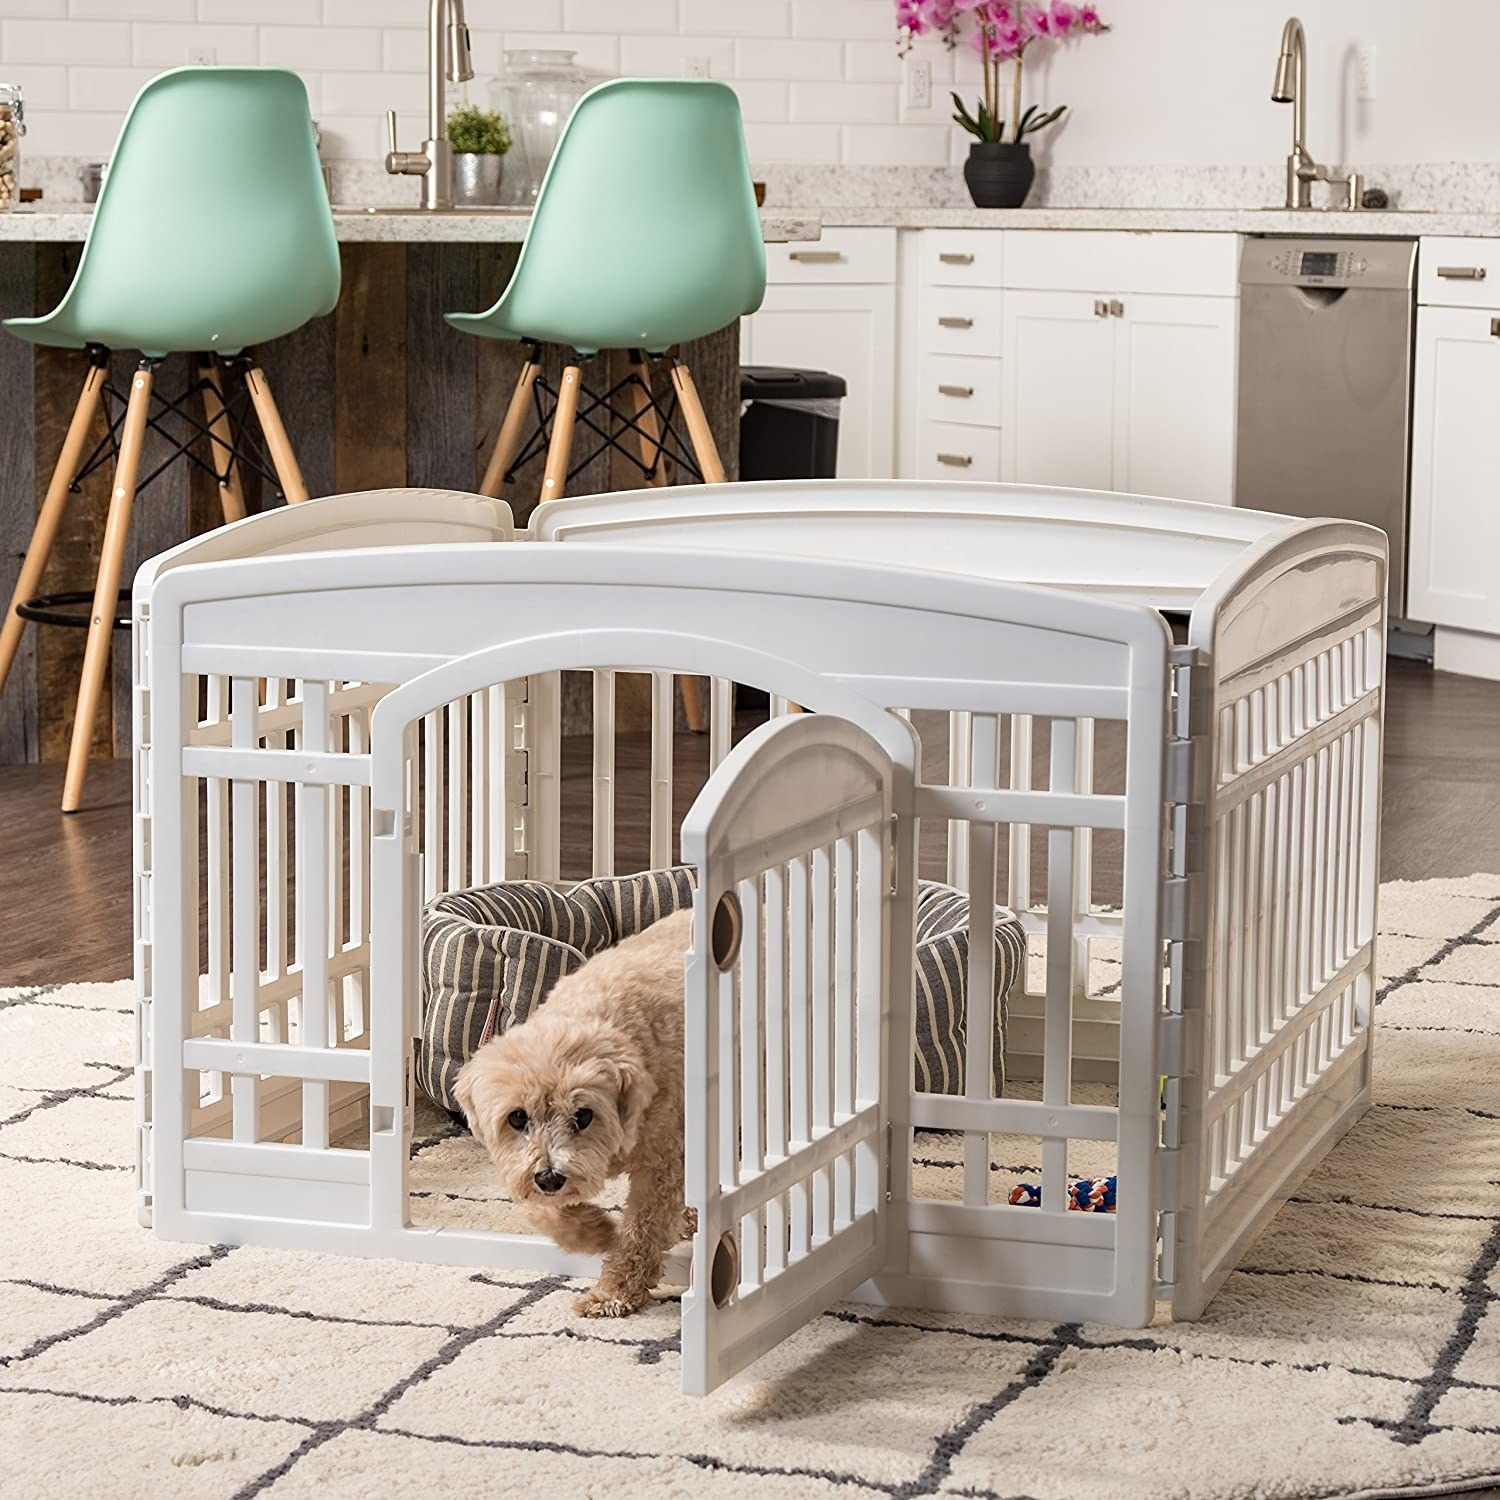 small dog in white fenced in play zone